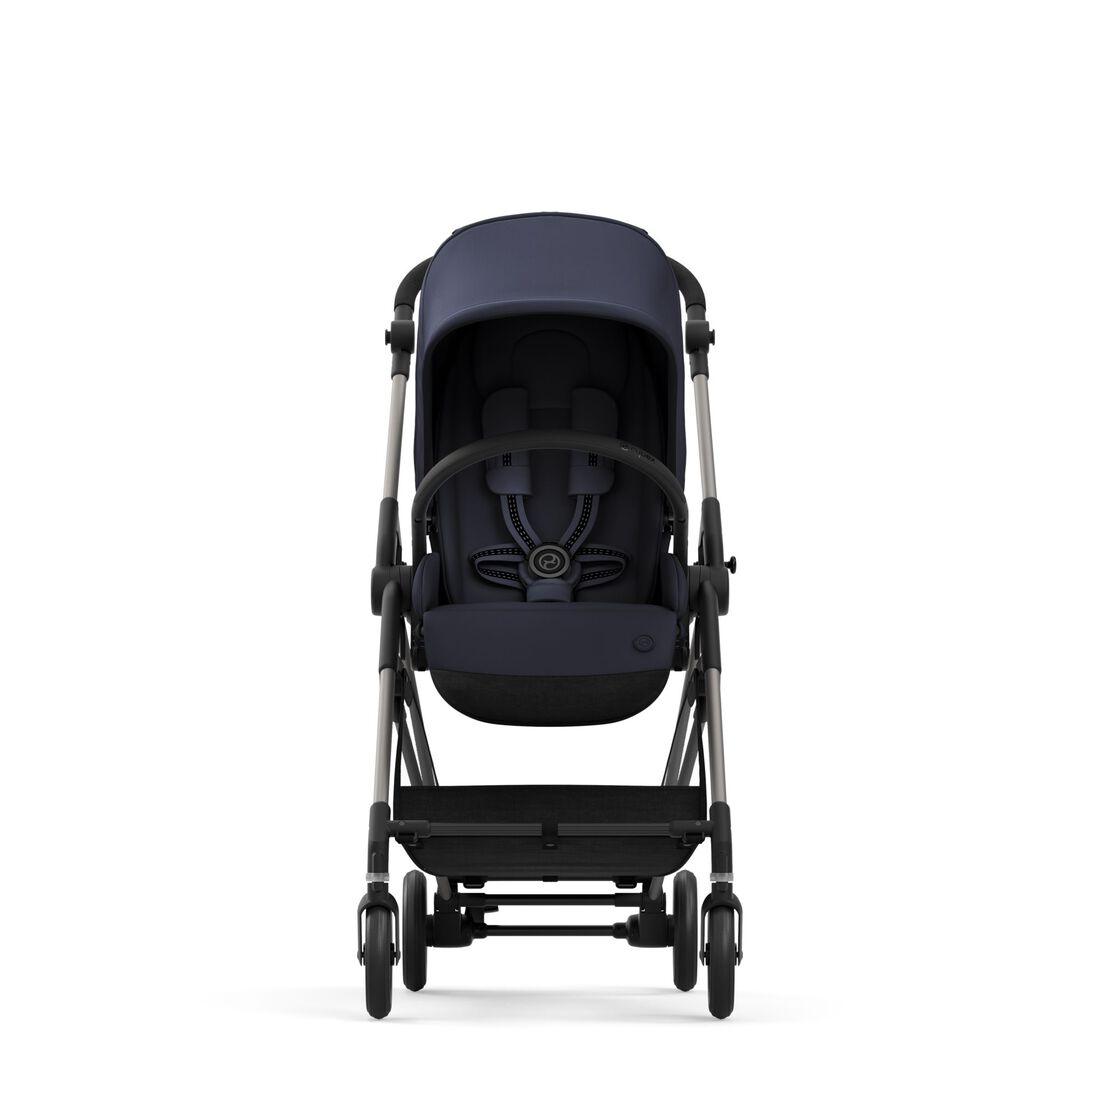 CYBEX Melio - Navy Blue in Navy Blue large image number 2